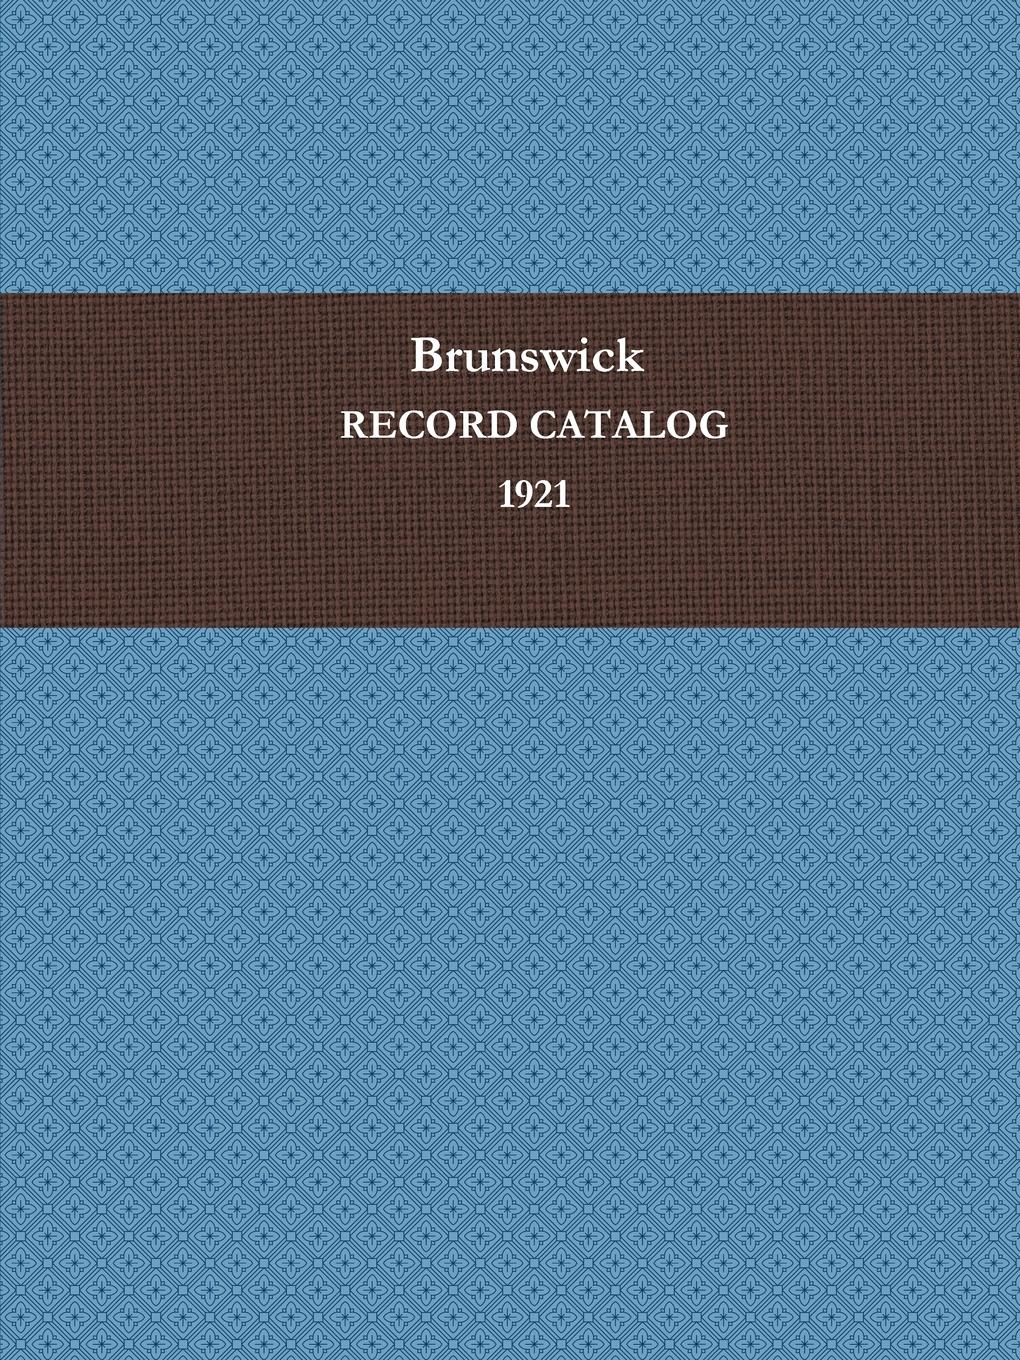 BRUNSWICK-BALKE-COLLENDER CO. BRUNSWICK RECORD CATALOG 1921 catalog blue book